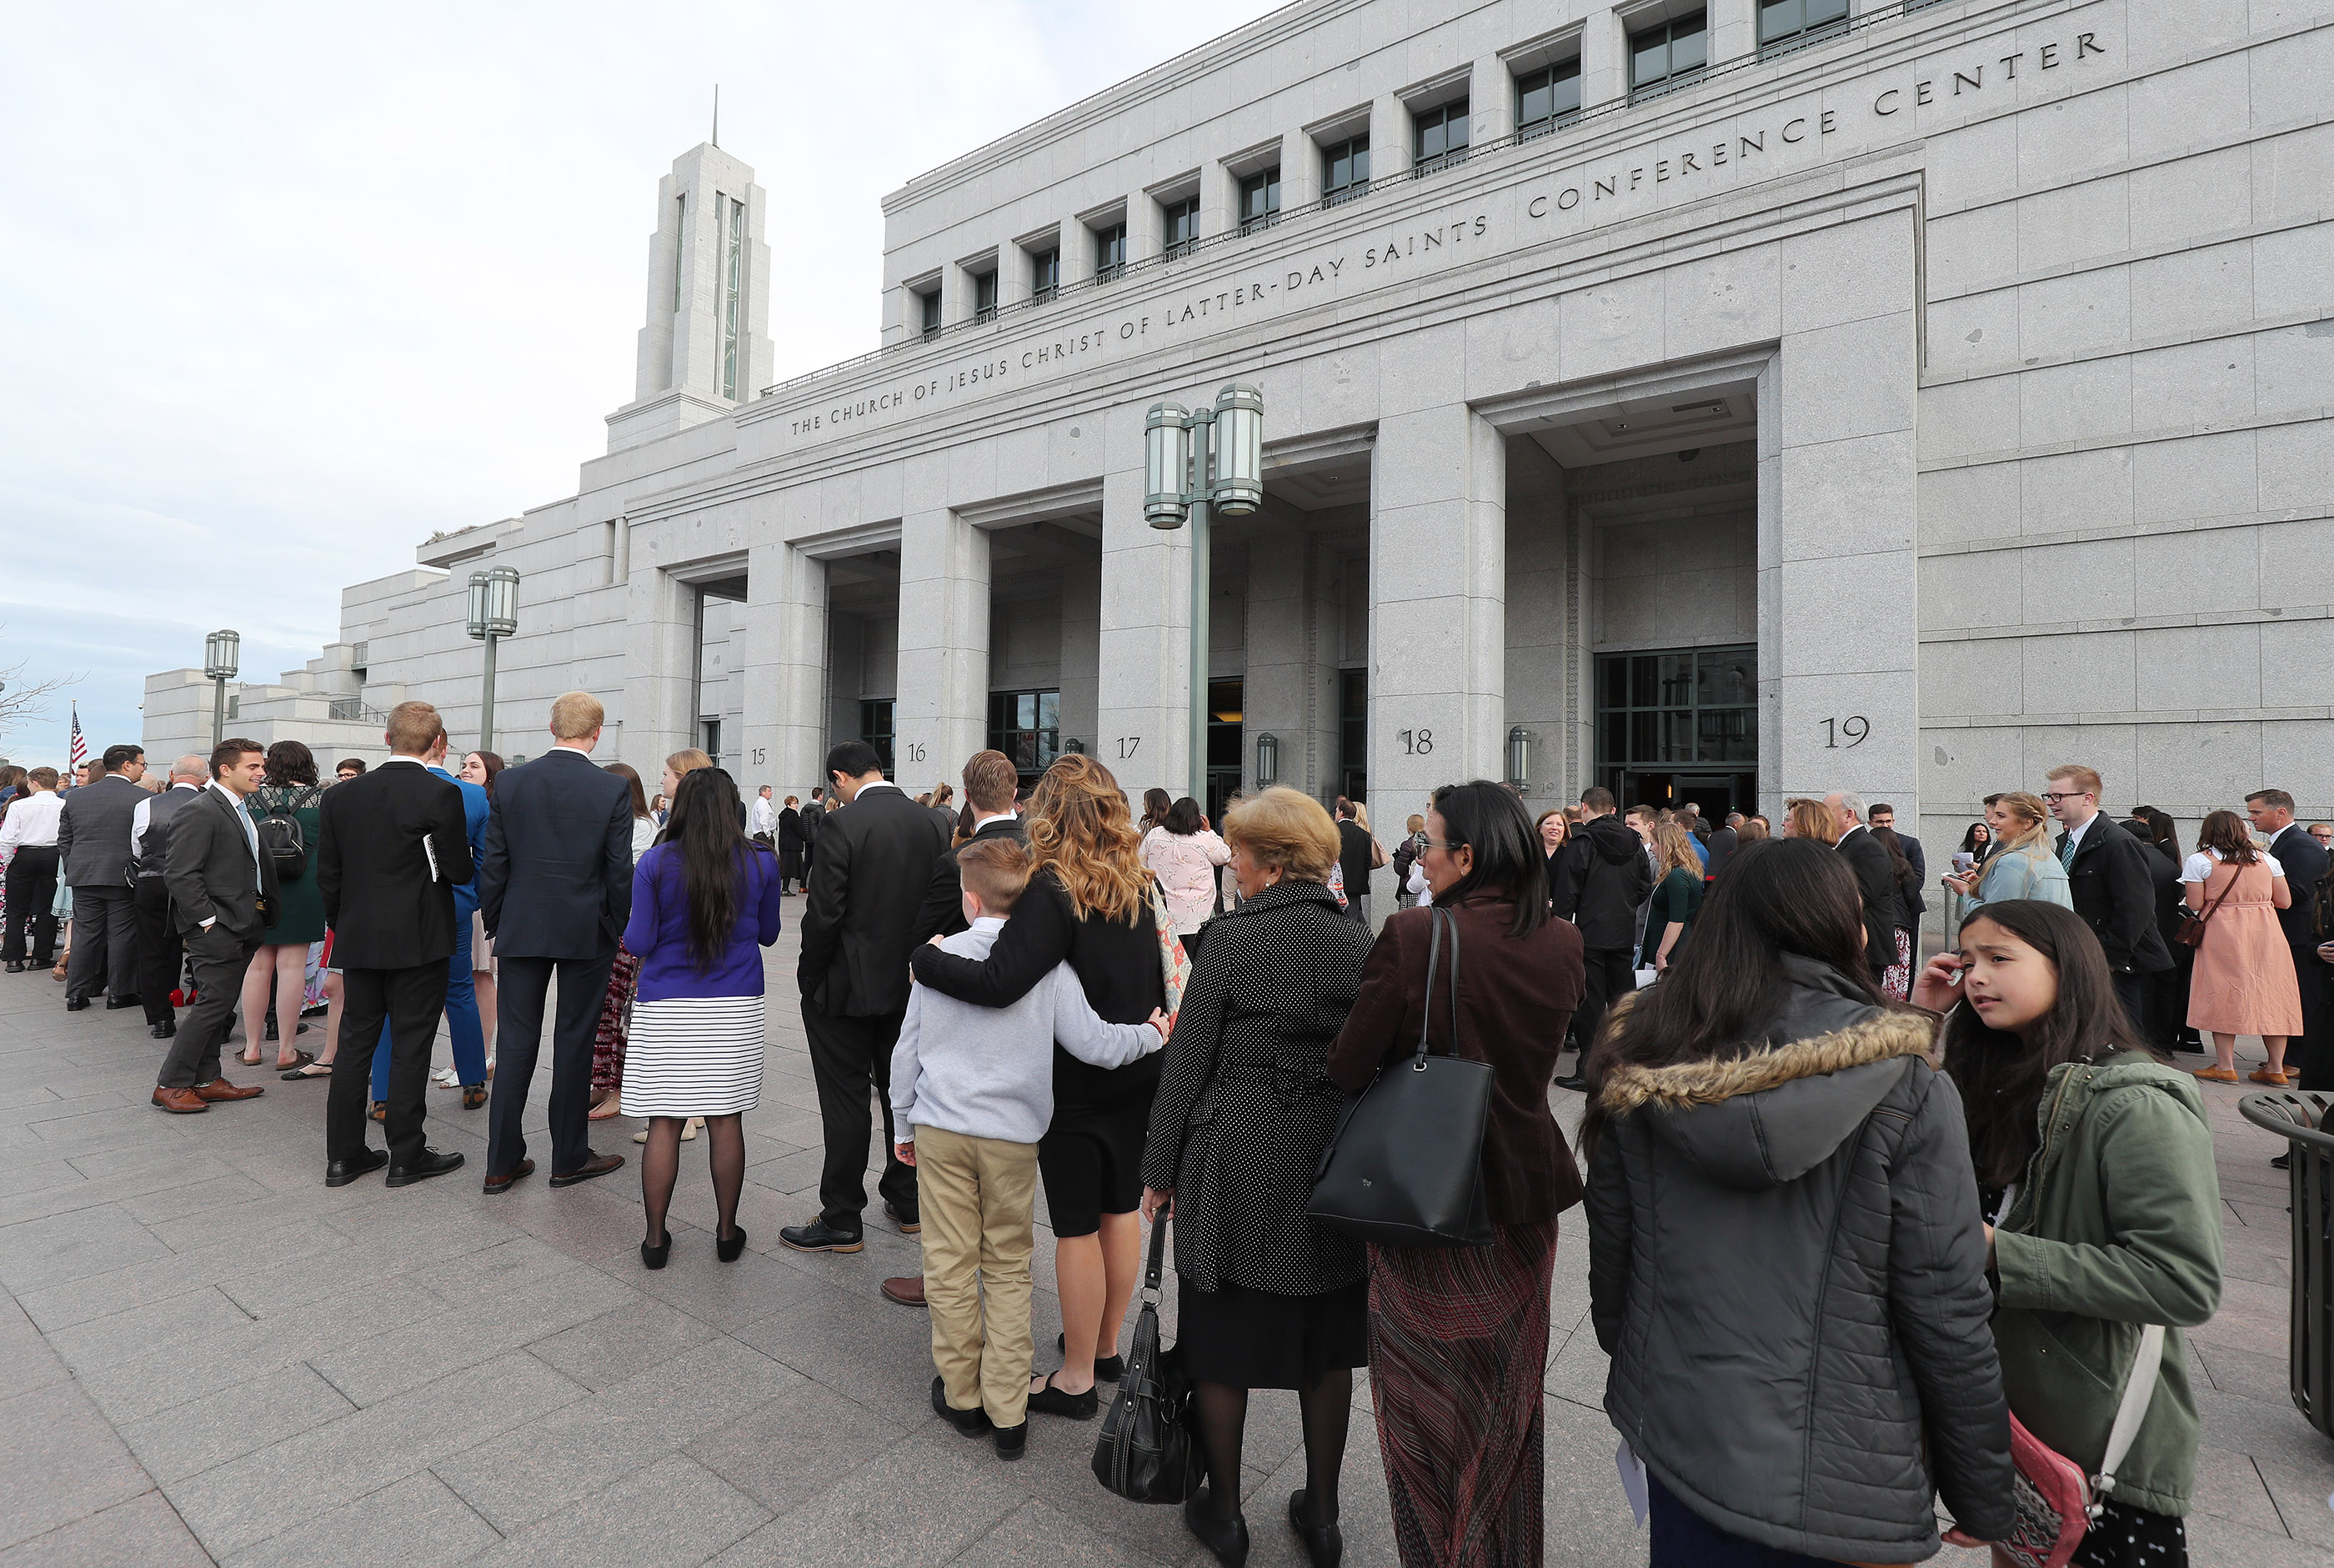 Conferencegoers line up at the Conference Center for the 189th Annual General Conference of The Church of Jesus Christ of Latter-day Saints in Salt Lake City on Sunday, April 7, 2019.